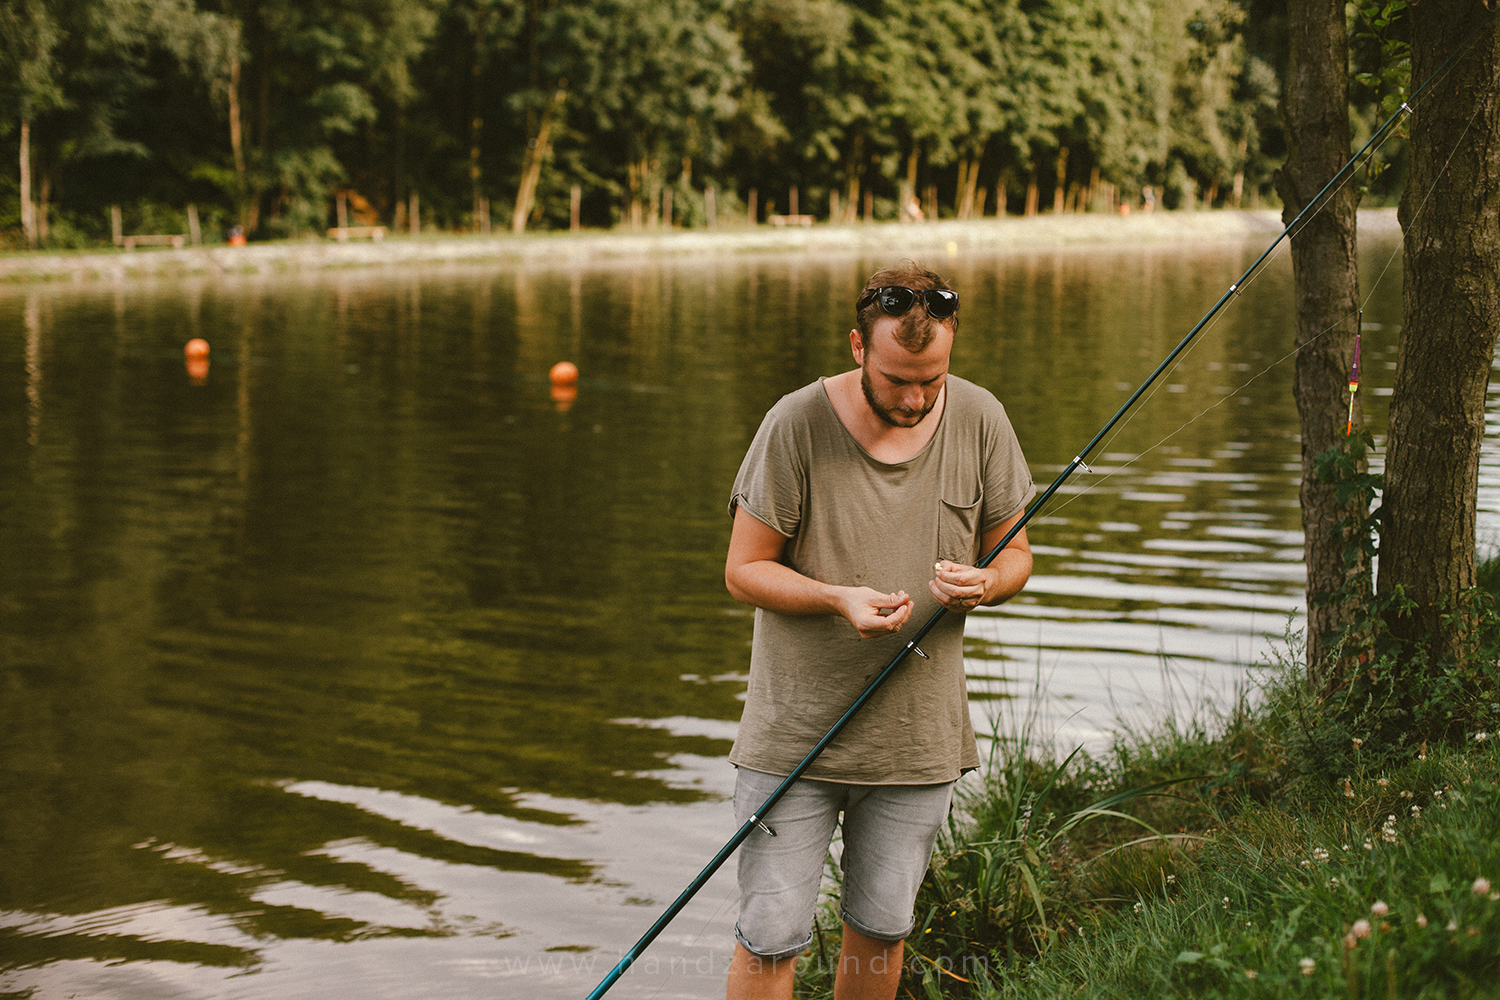 Zach getting ready for fishing in Zalew (a manmade hole filled with water from the local spring), where you can swim and fish.